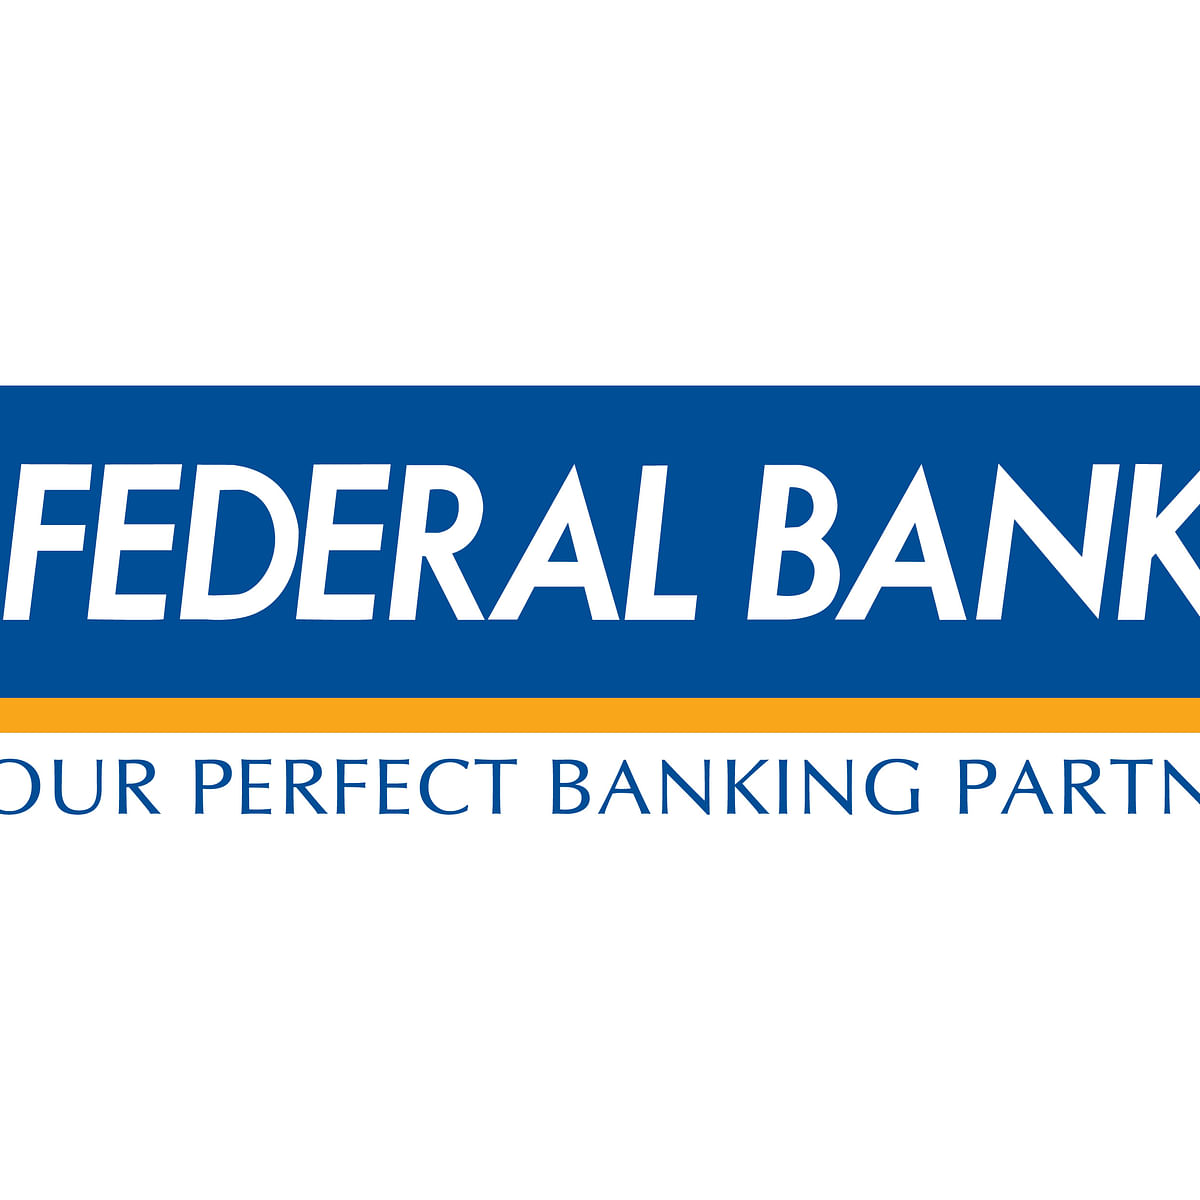 Federal Bank Executive Director says RBI cuts not leading to lower costs